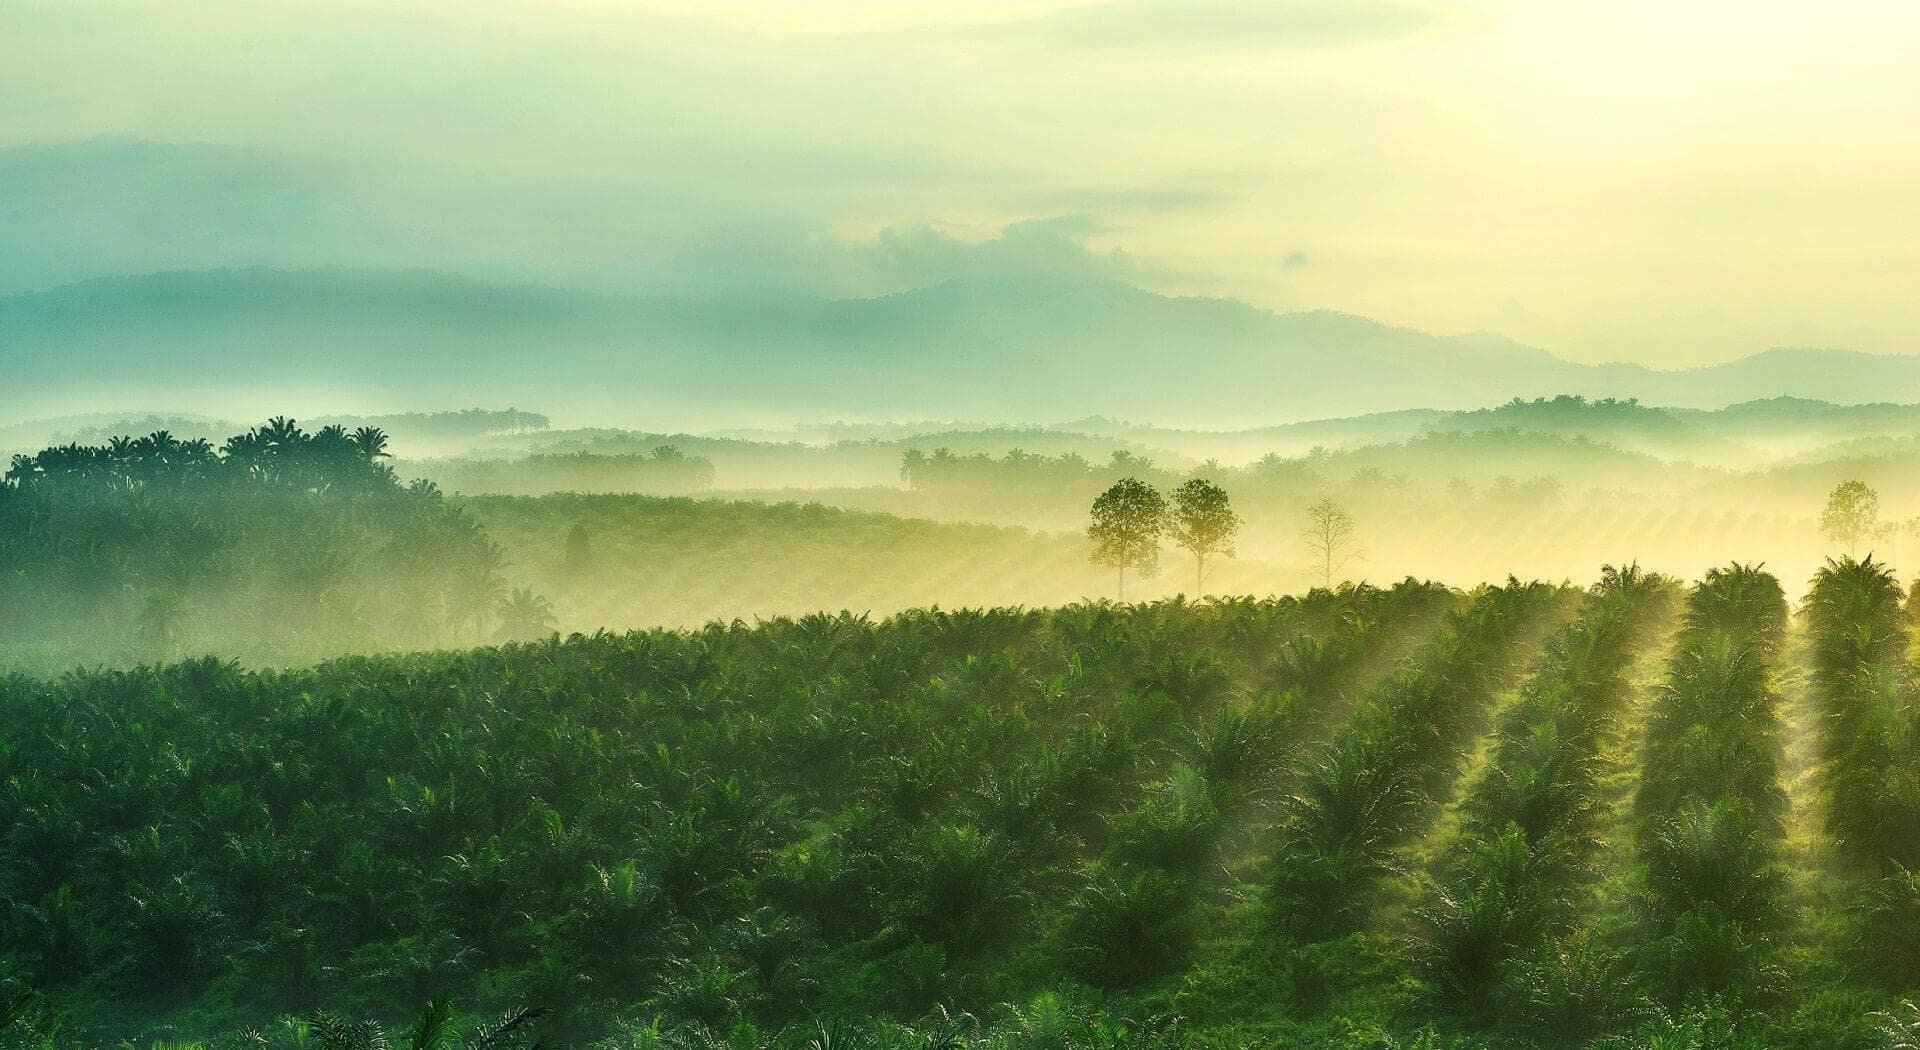 Sime darby plantation strengthens policy on suppliers who violate no deforestation commitments